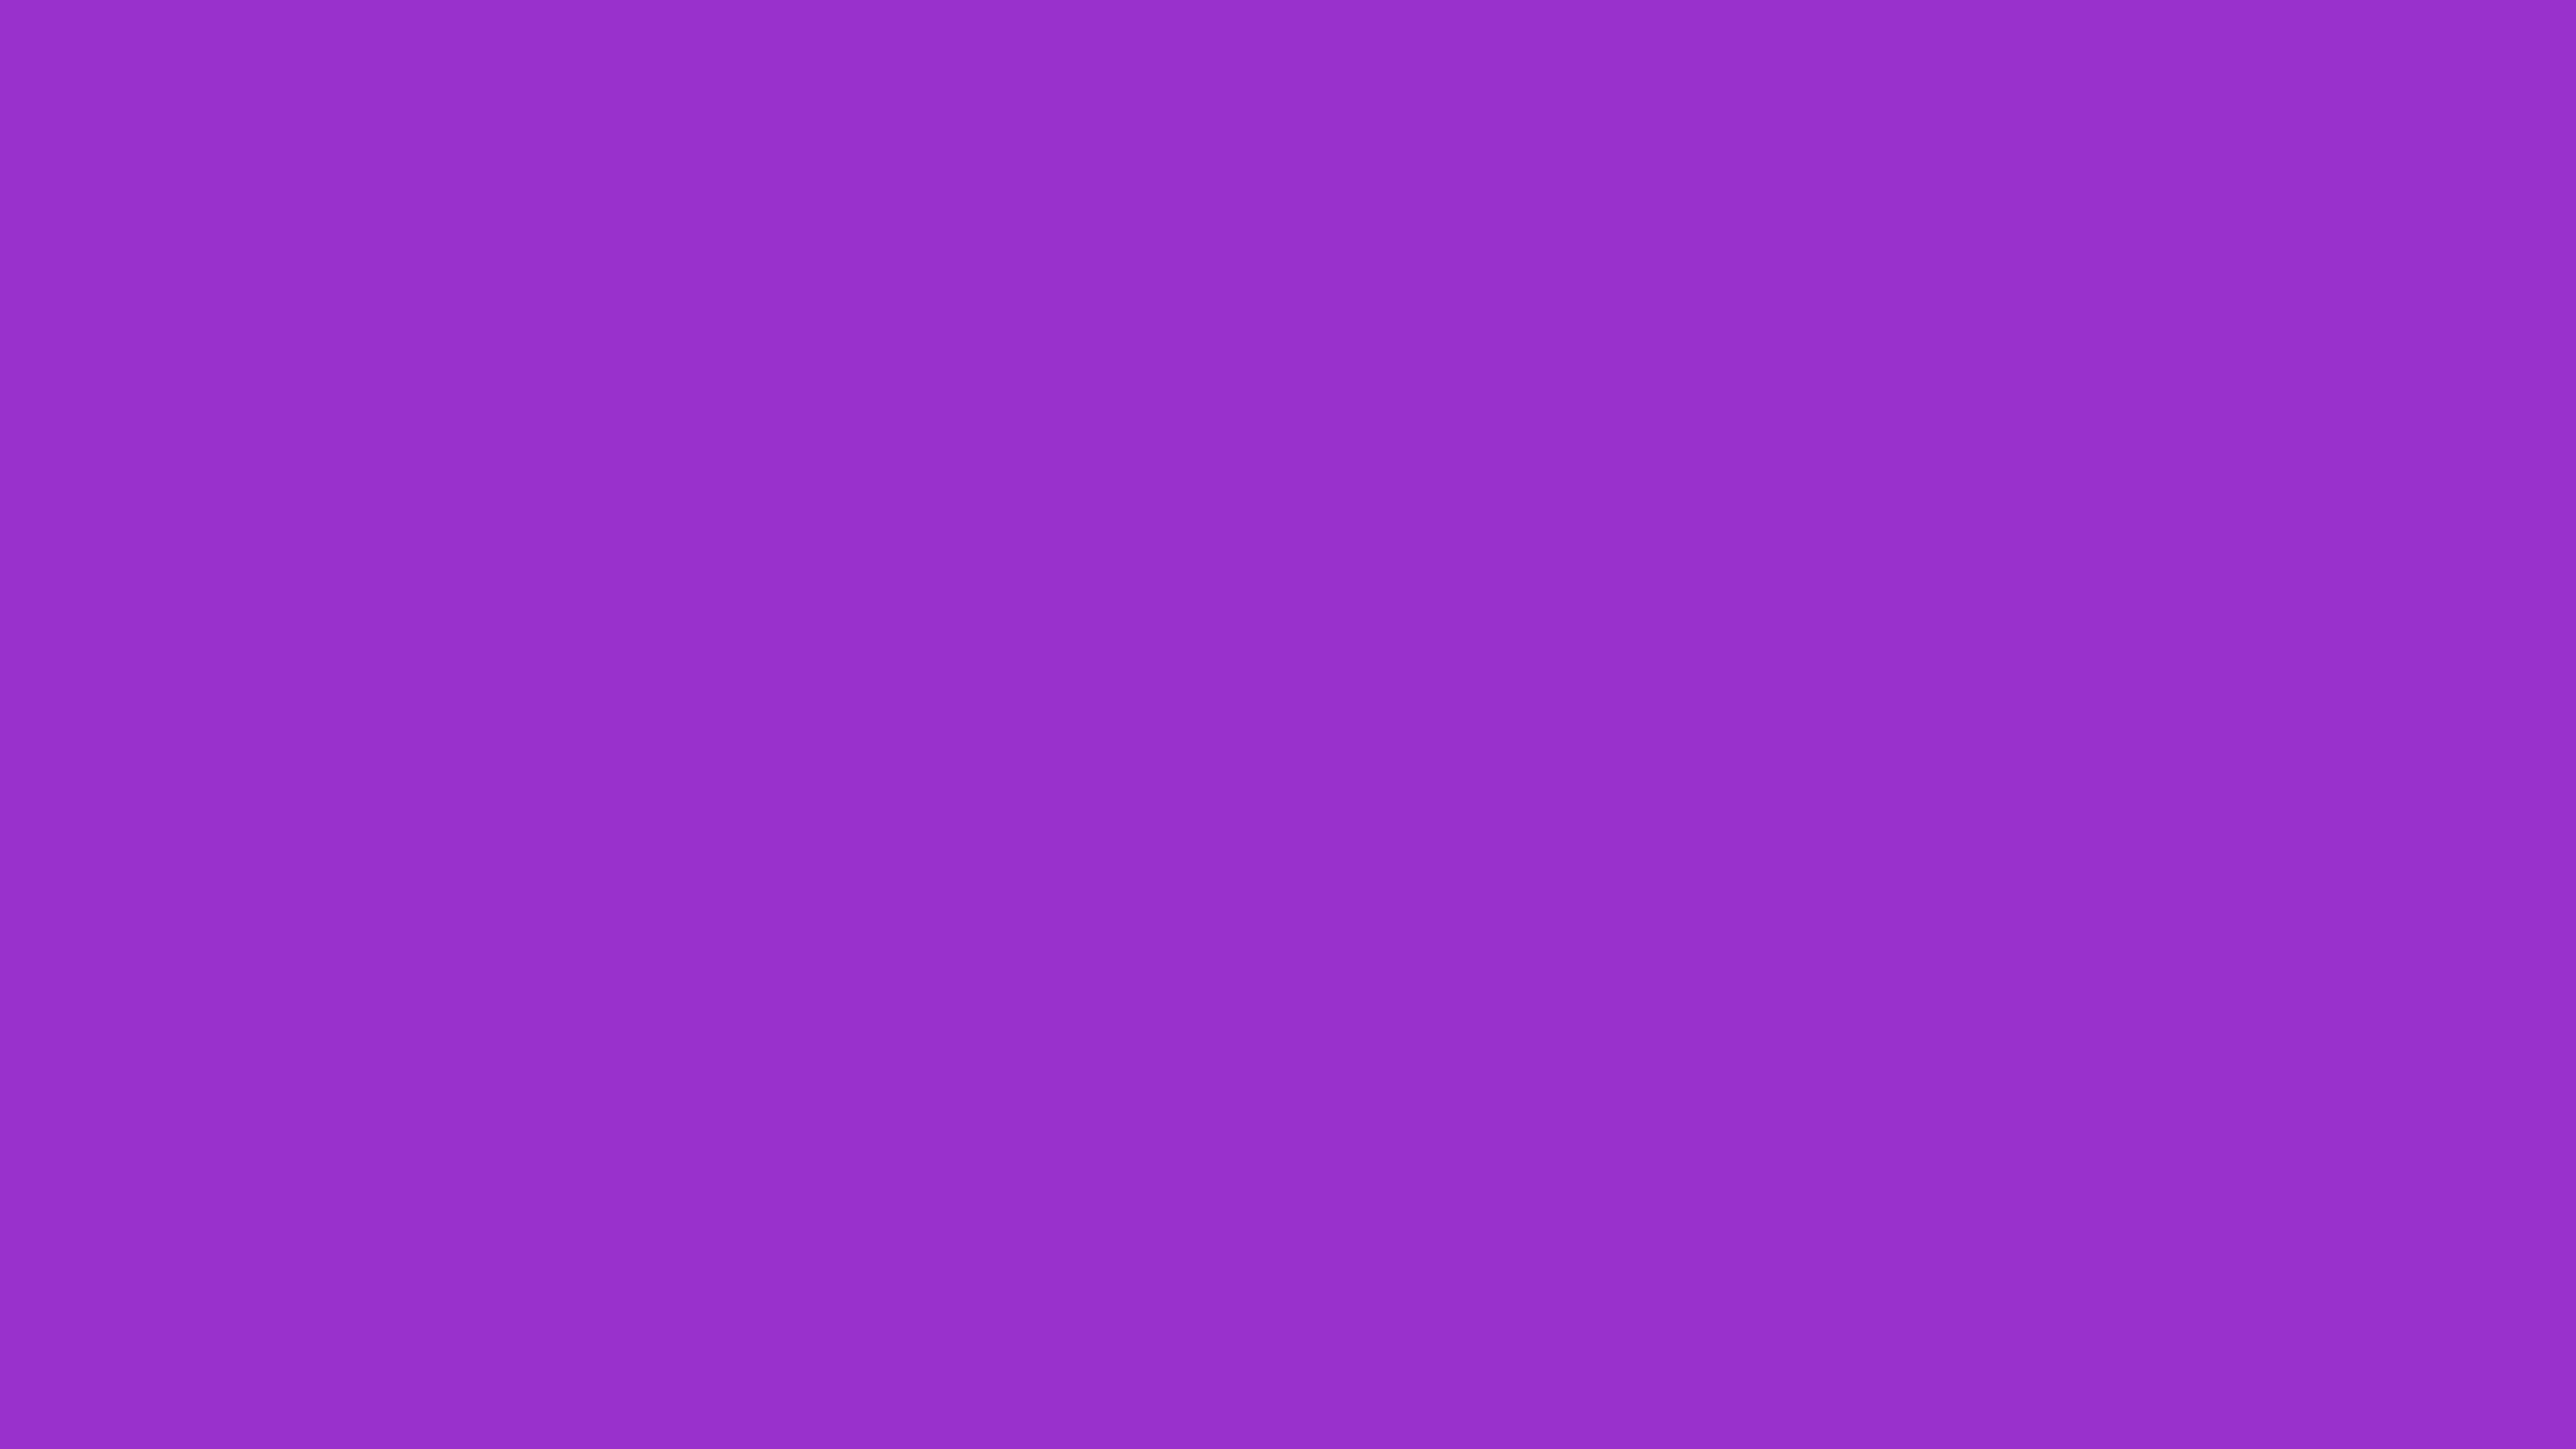 3840x2160 Dark Orchid Solid Color Background